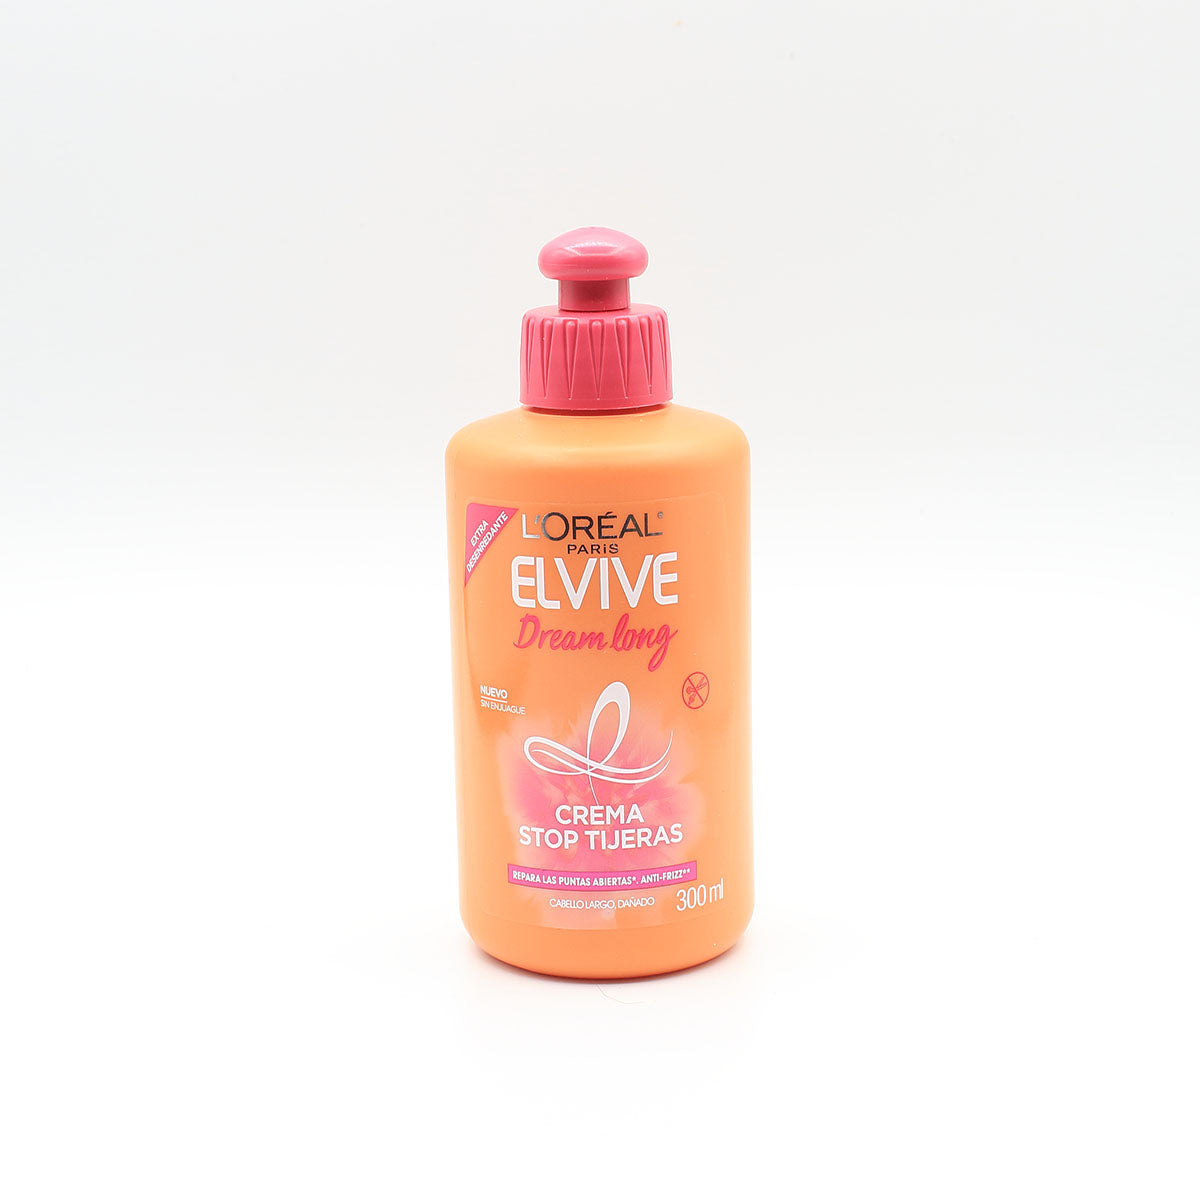 Elvive Dream Len grth Cpp 300 ml